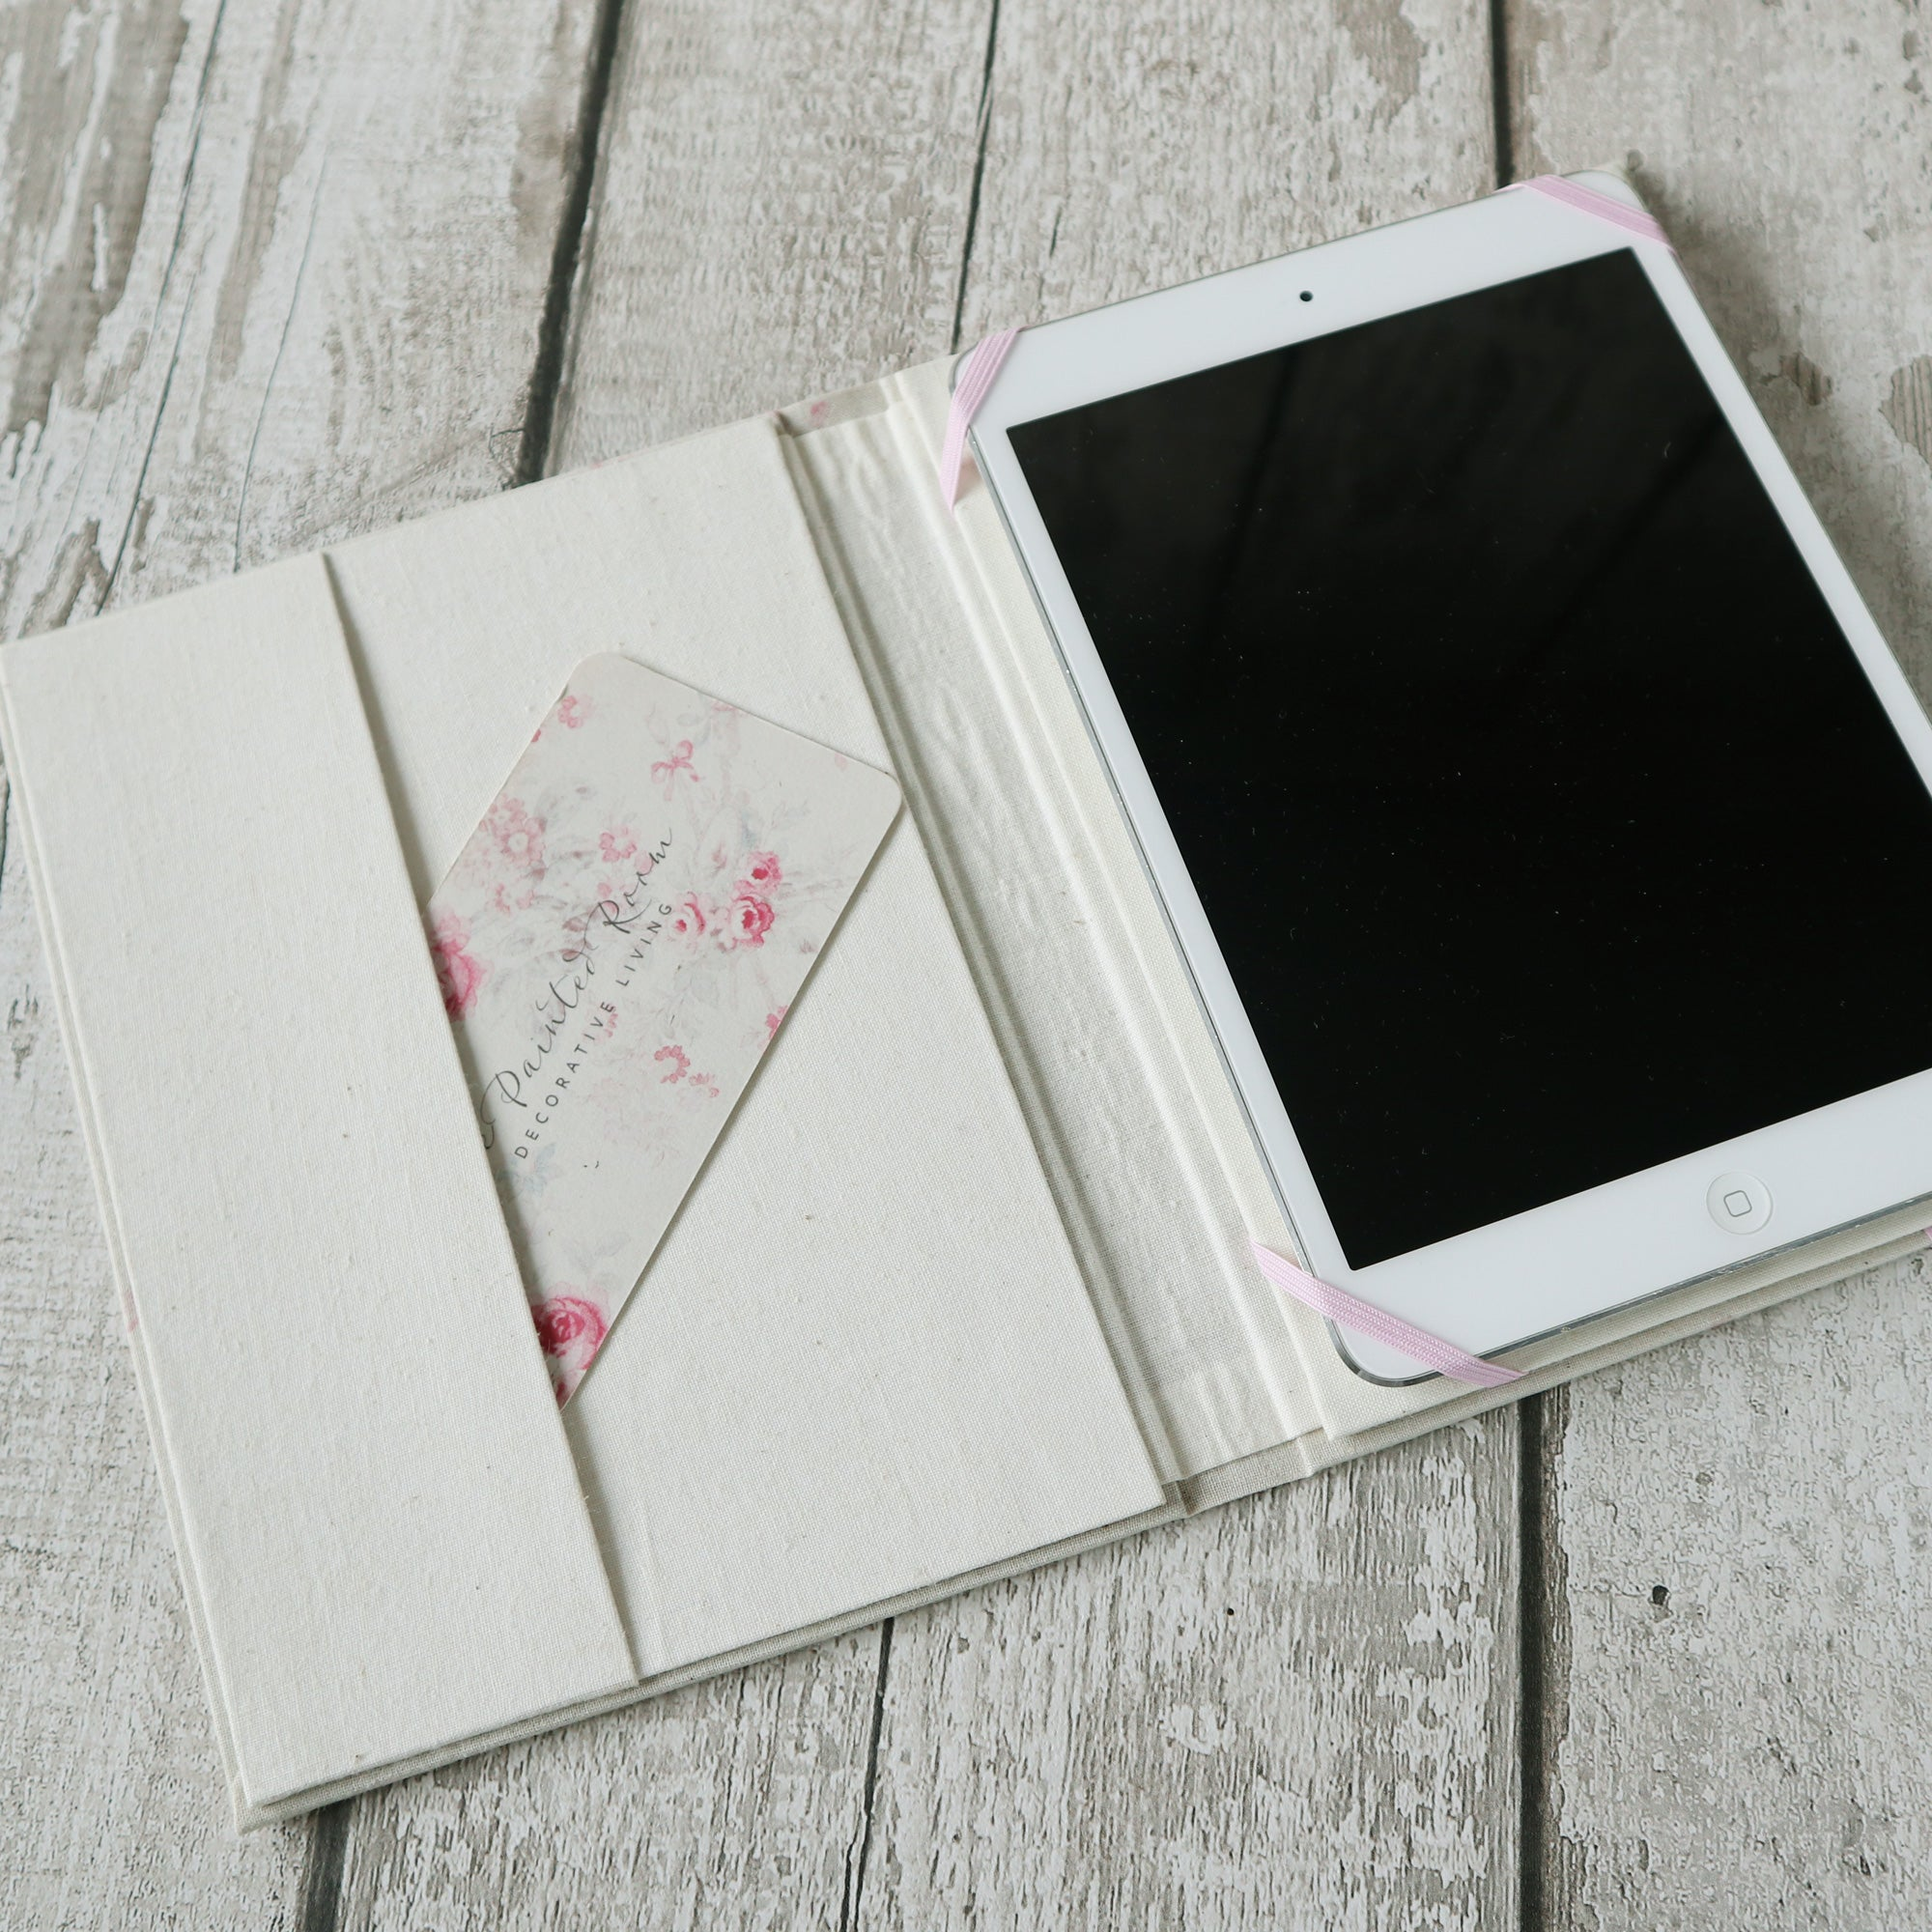 Handmade vintage fabric covered ipad mini / kindle paperwhite holder hardcover case protector